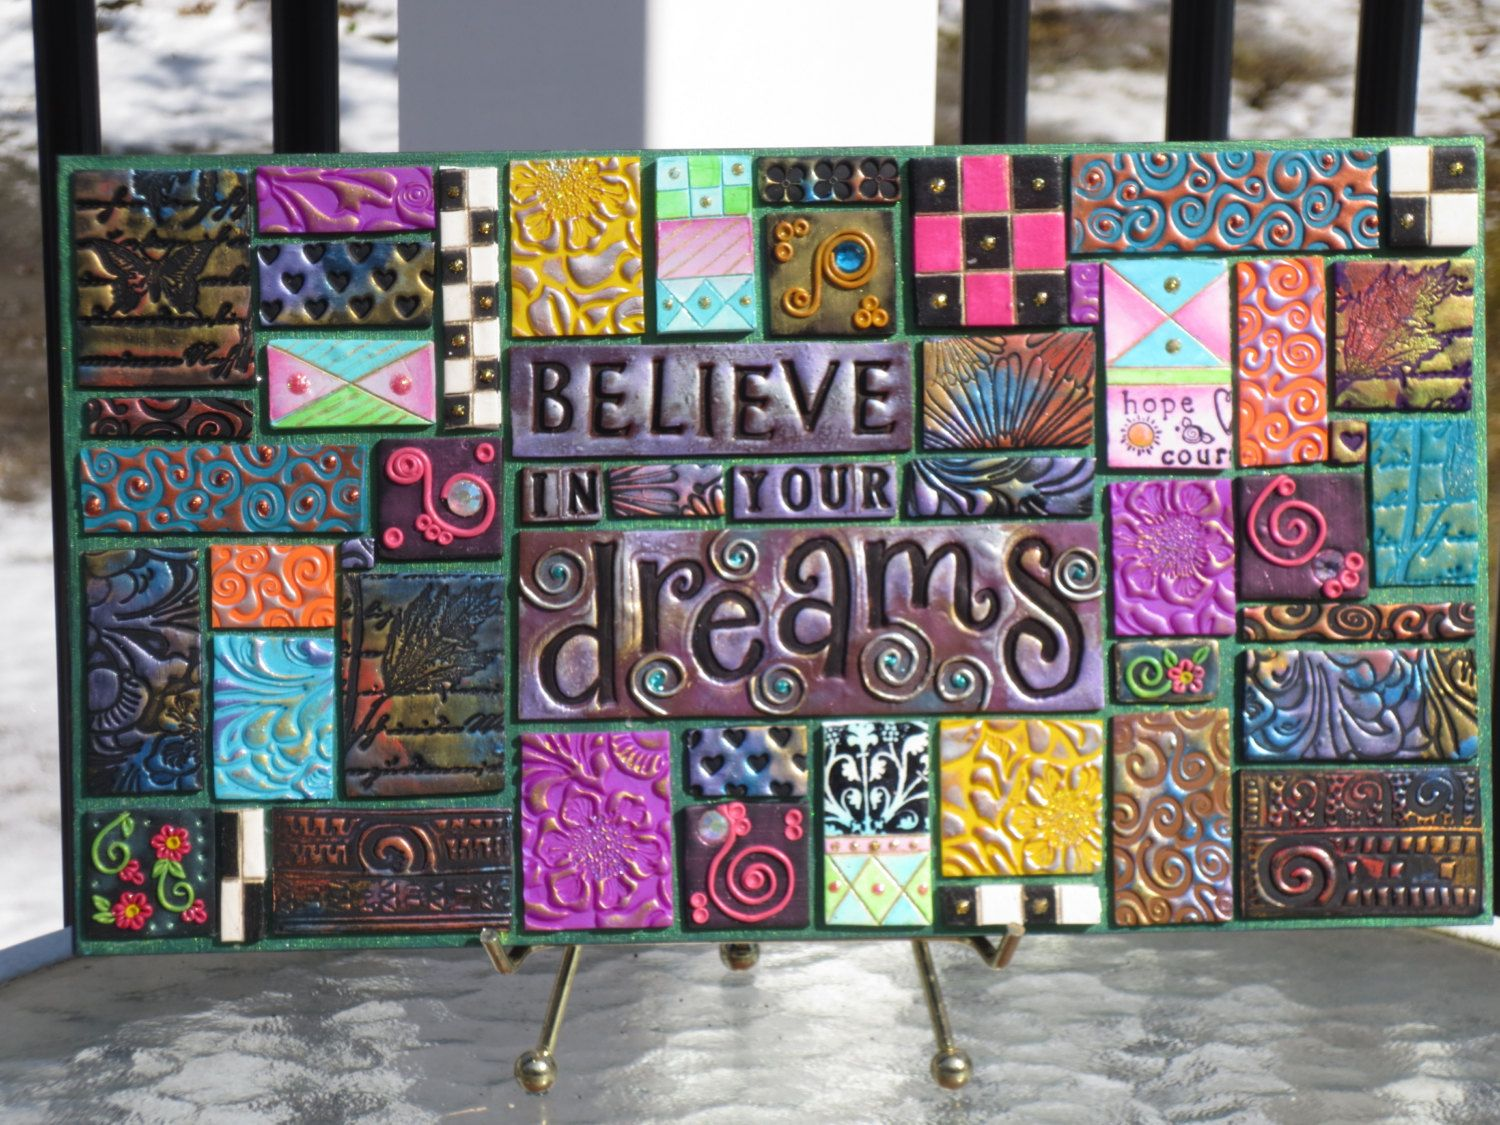 Believe in your Dreams Polymer Clay Tile Mosaic by myserenitycrafts12 on Etsy https://www.etsy.com/listing/225948481/believe-in-your-dreams-polymer-clay-tile